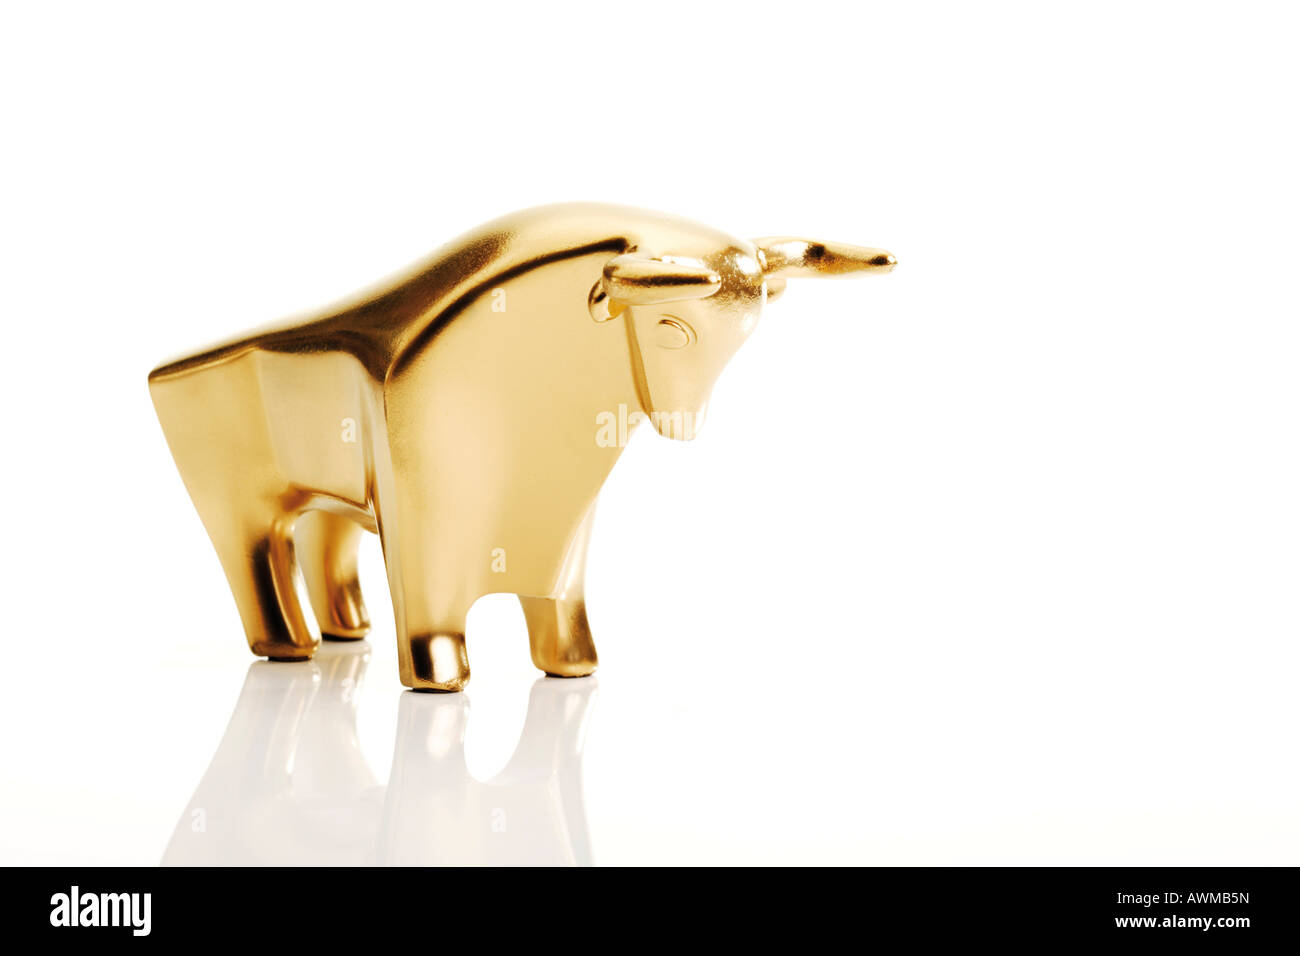 Gold-plated bull - Stock Image